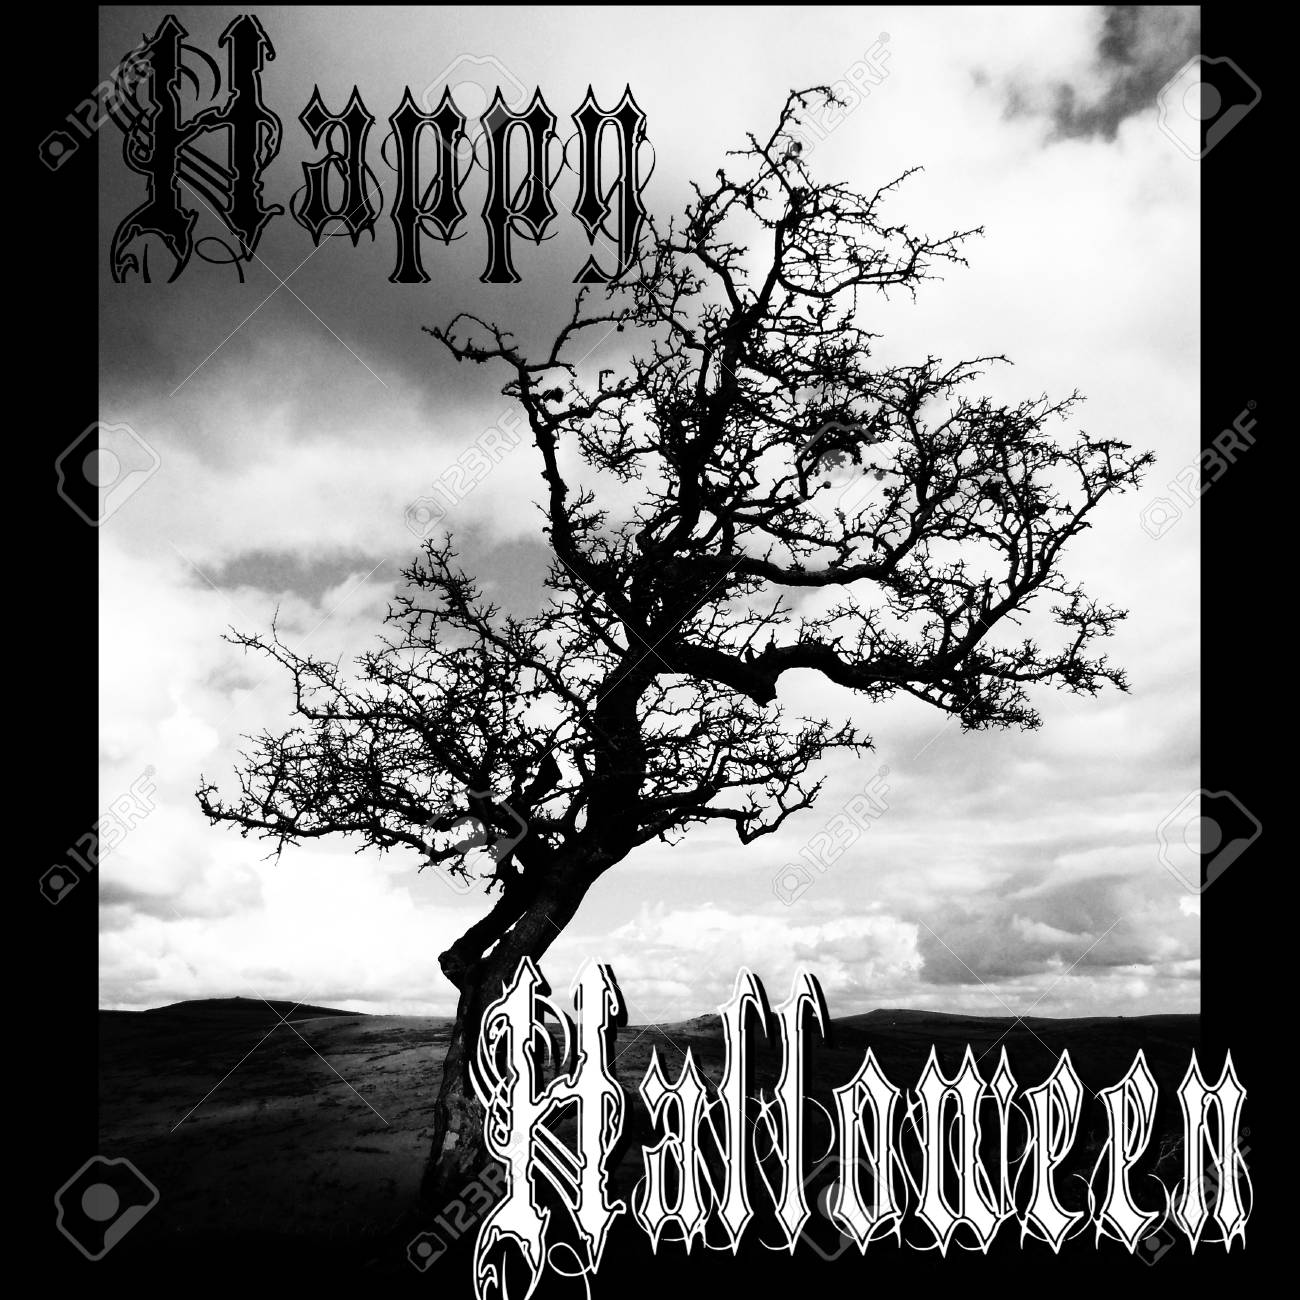 Happy Halloween Card With Dead Tree In Landscape, And Gothic Lettering Saying  Happy Halloween,